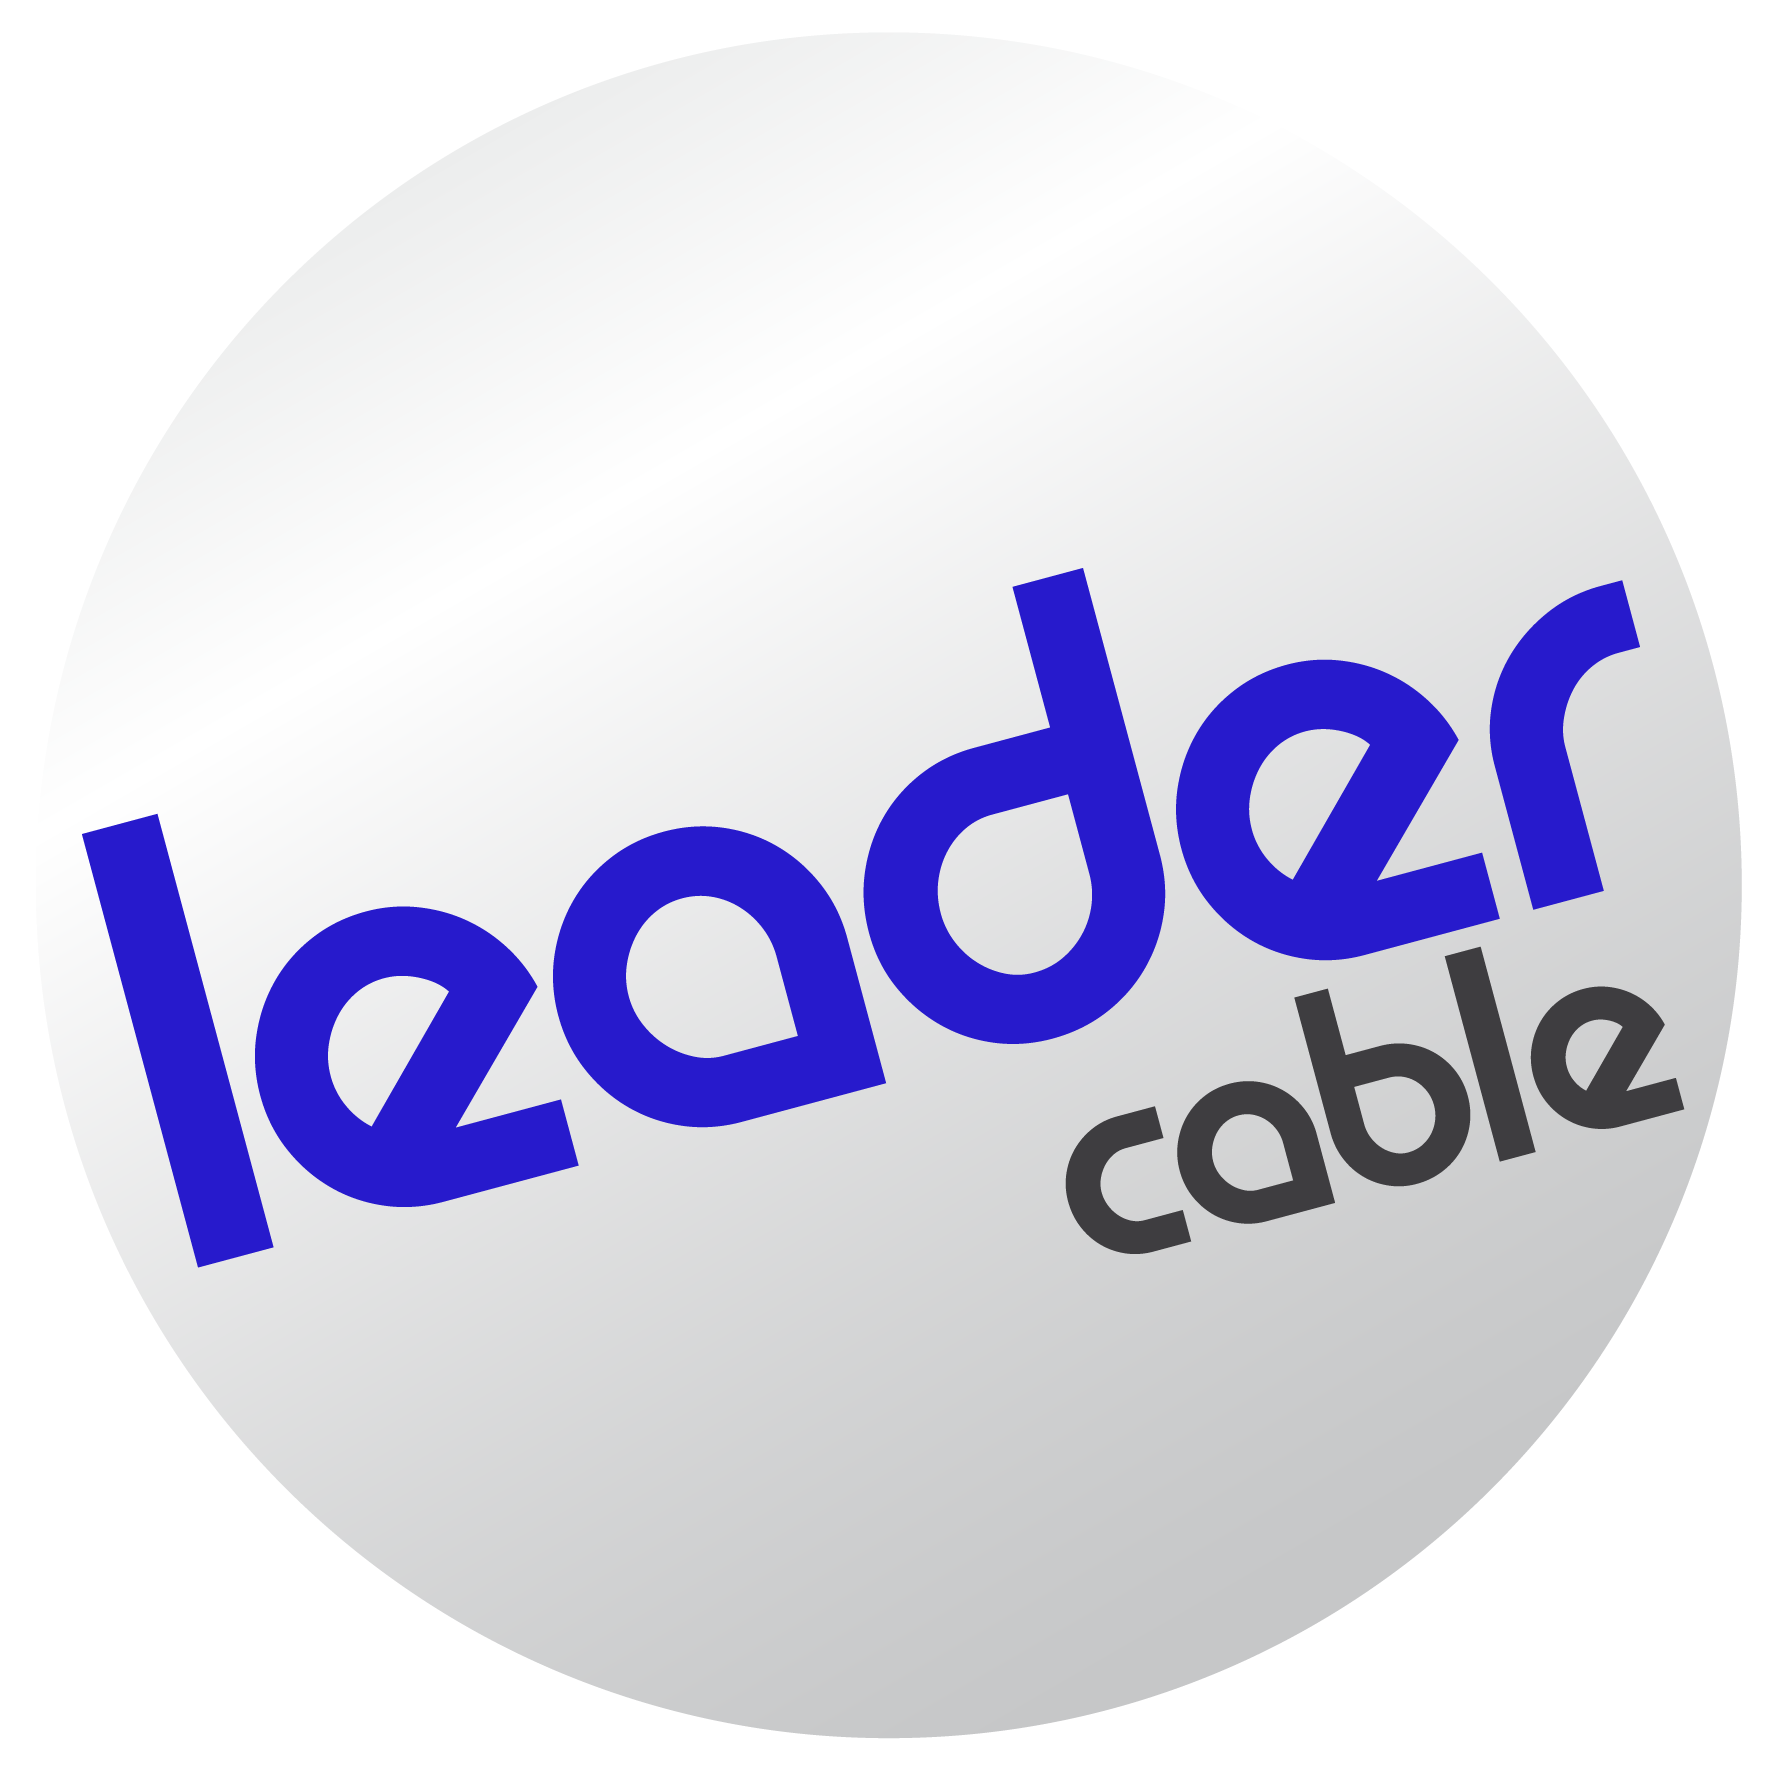 LEADER-CABLE-LOGO-01